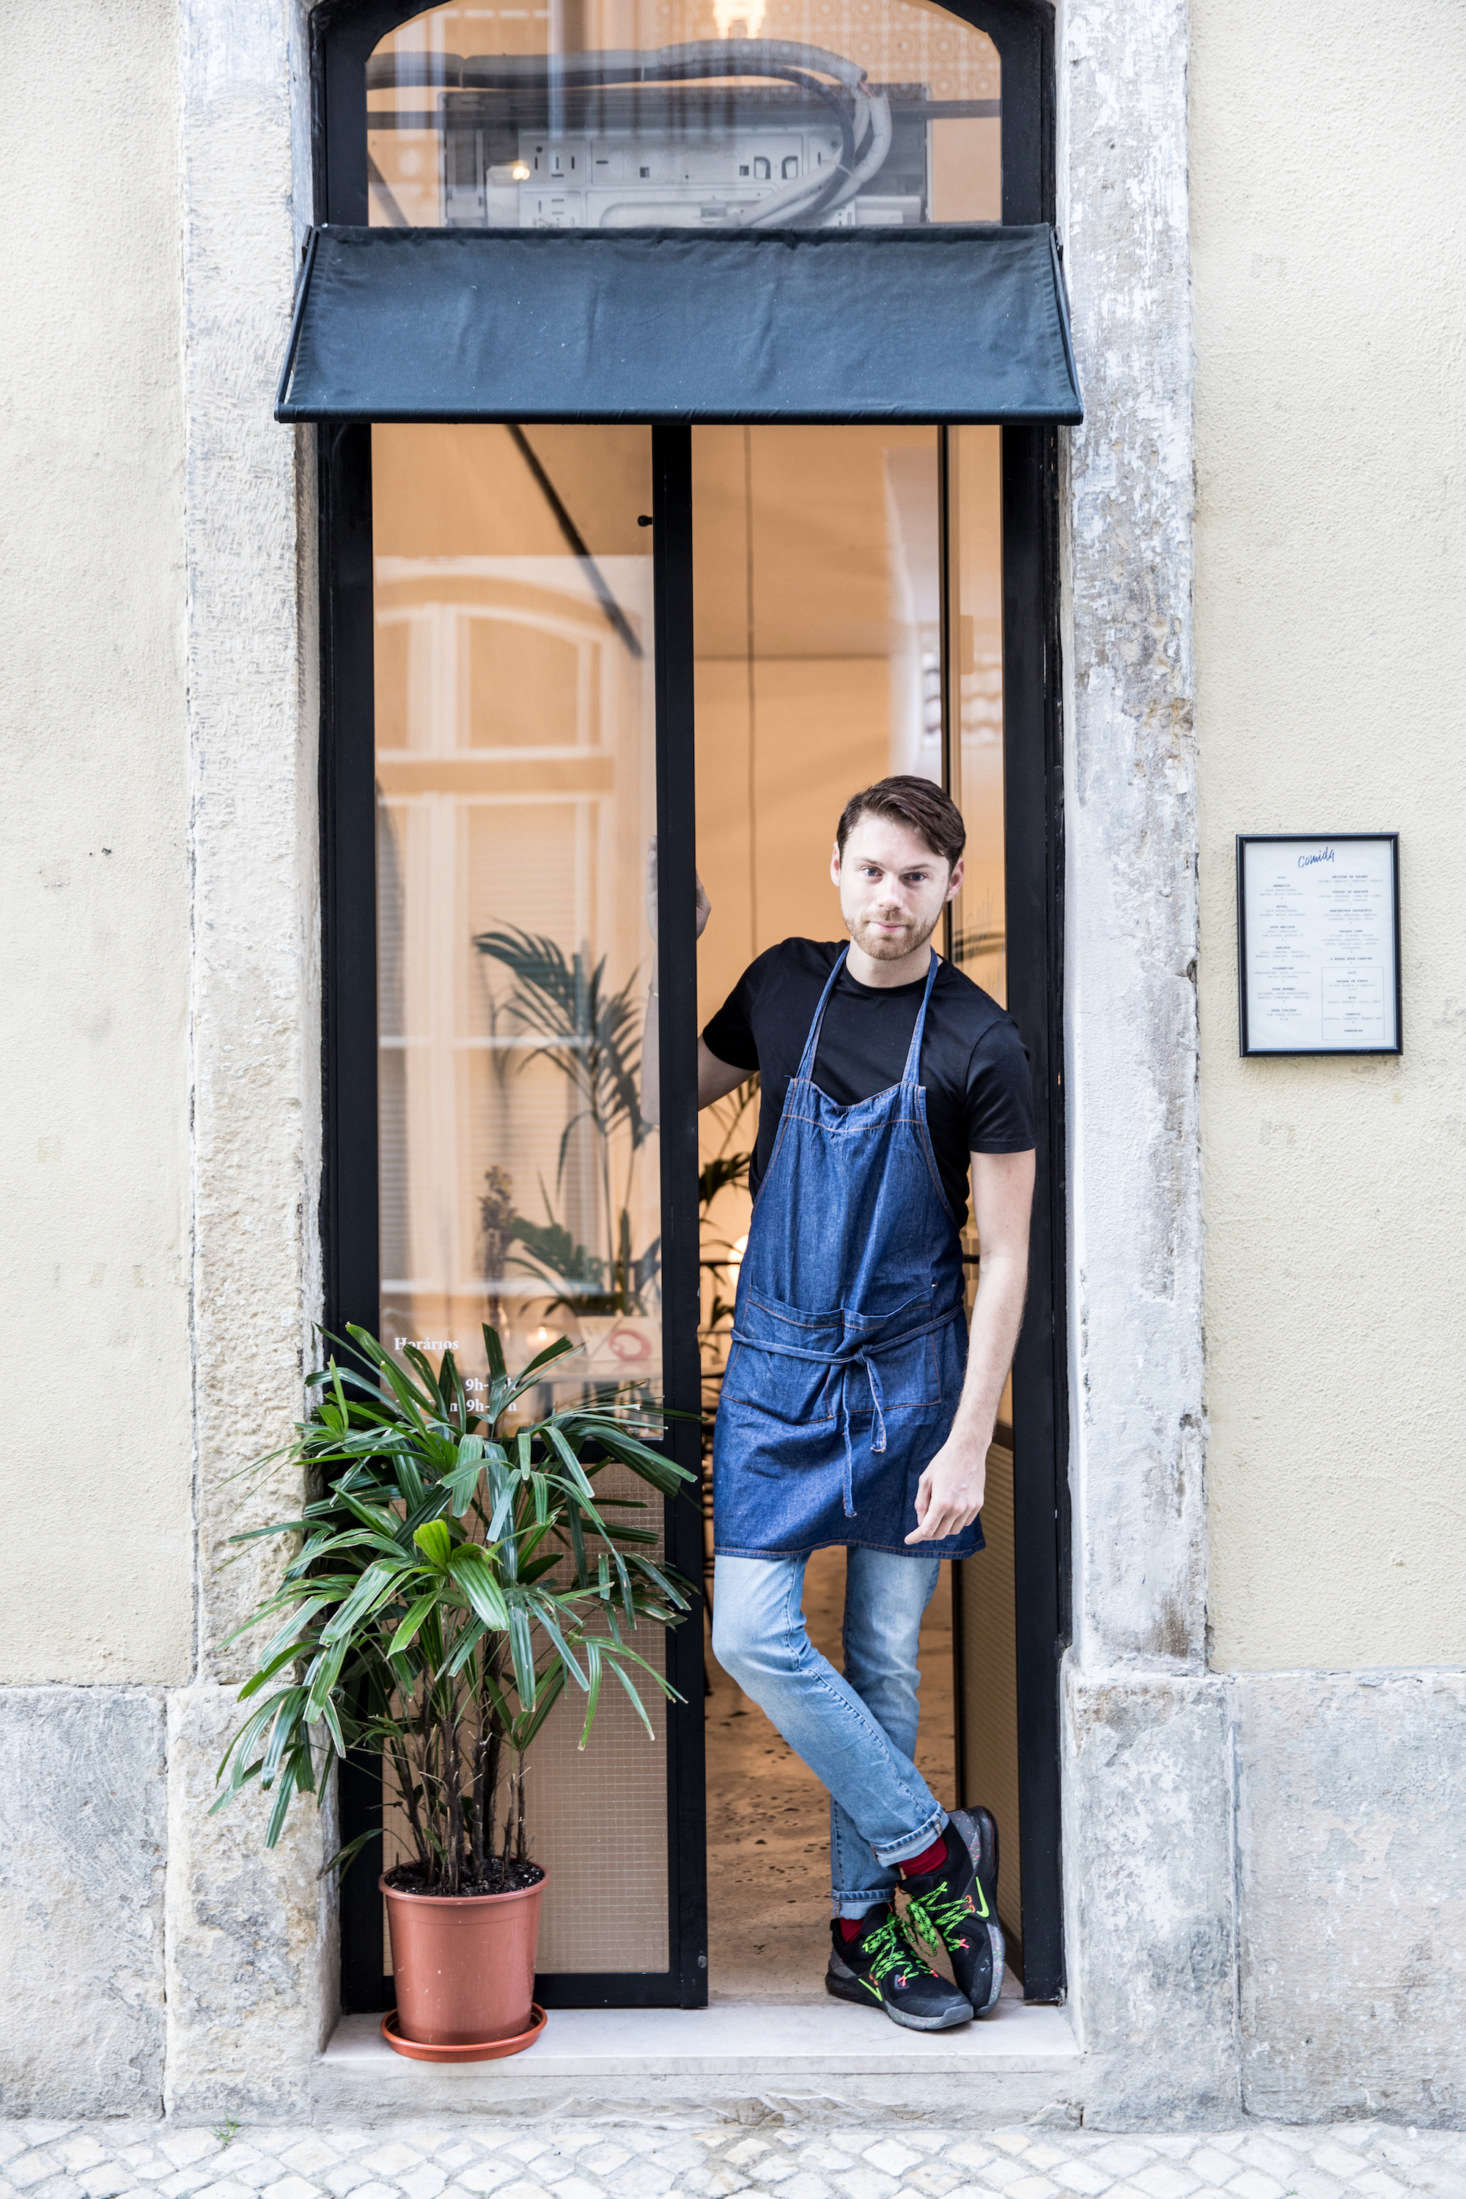 Garrec, who recently moved from New York to Lisbon, in the restaurant's narrow entryway.